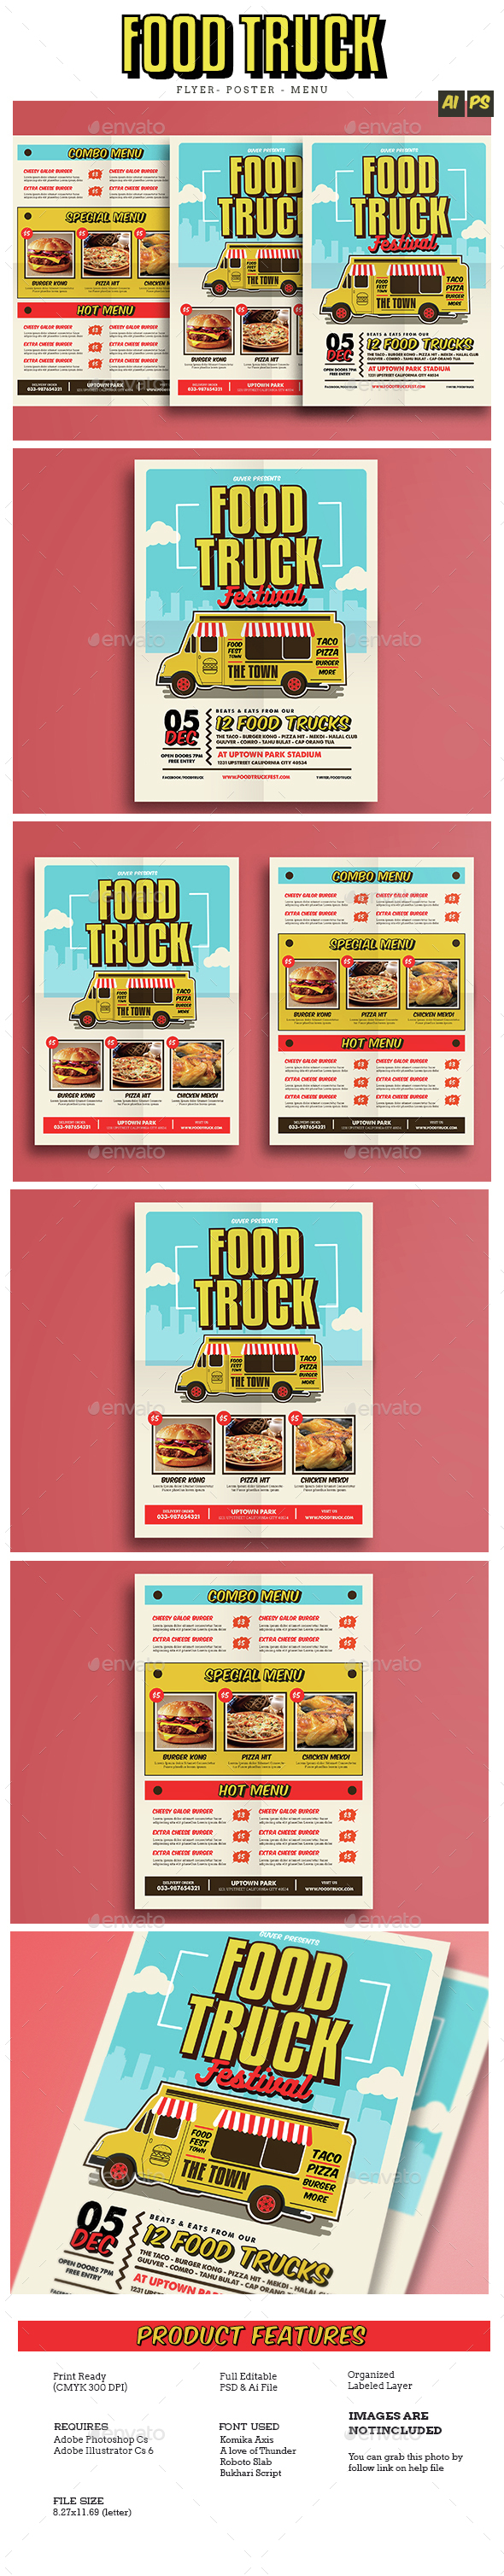 Pop Art Food Truck Flyer/Poster/Menu - Food Menus Print Templates